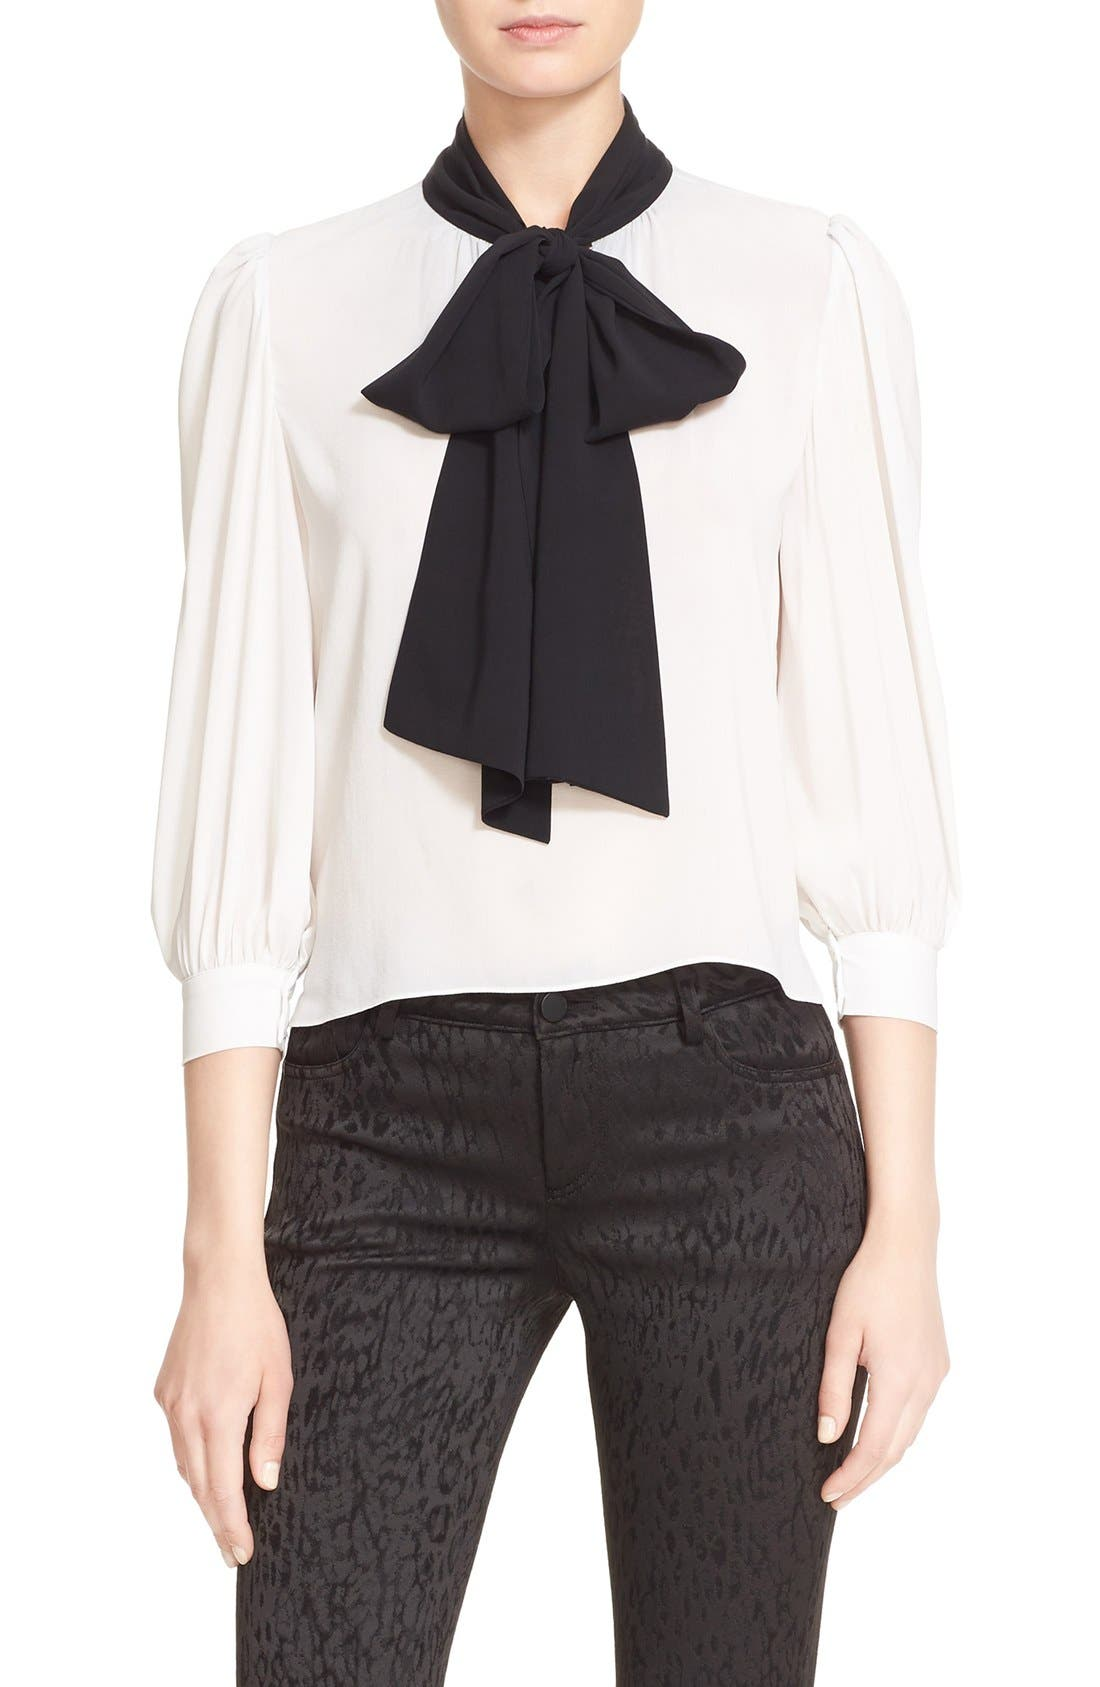 Alternate Image 1 Selected - Alice + Olivia 'Treena' Contrast Bow Stretch Silk Blouse